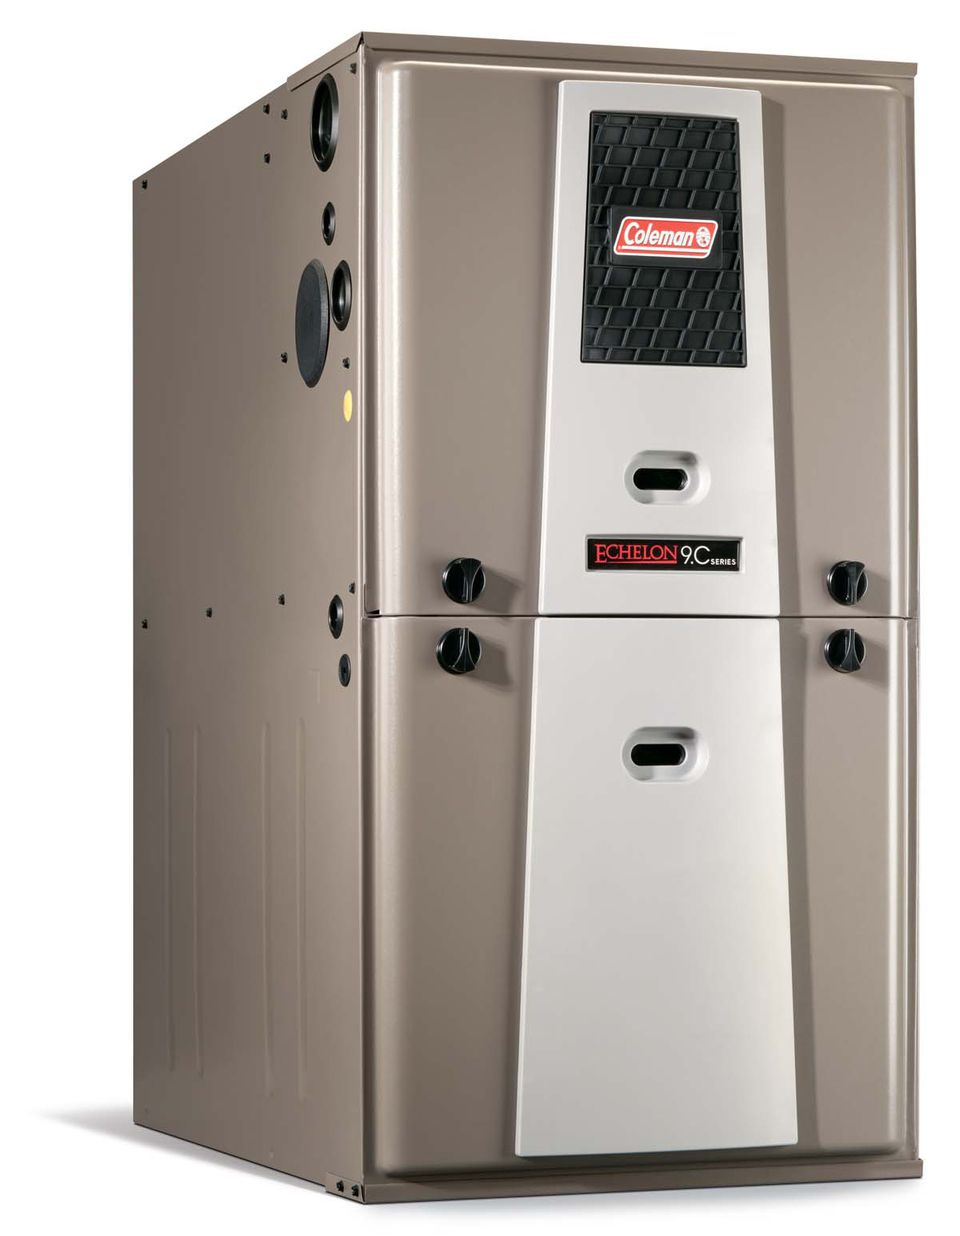 Elegant Small Gas Furnace for Basement